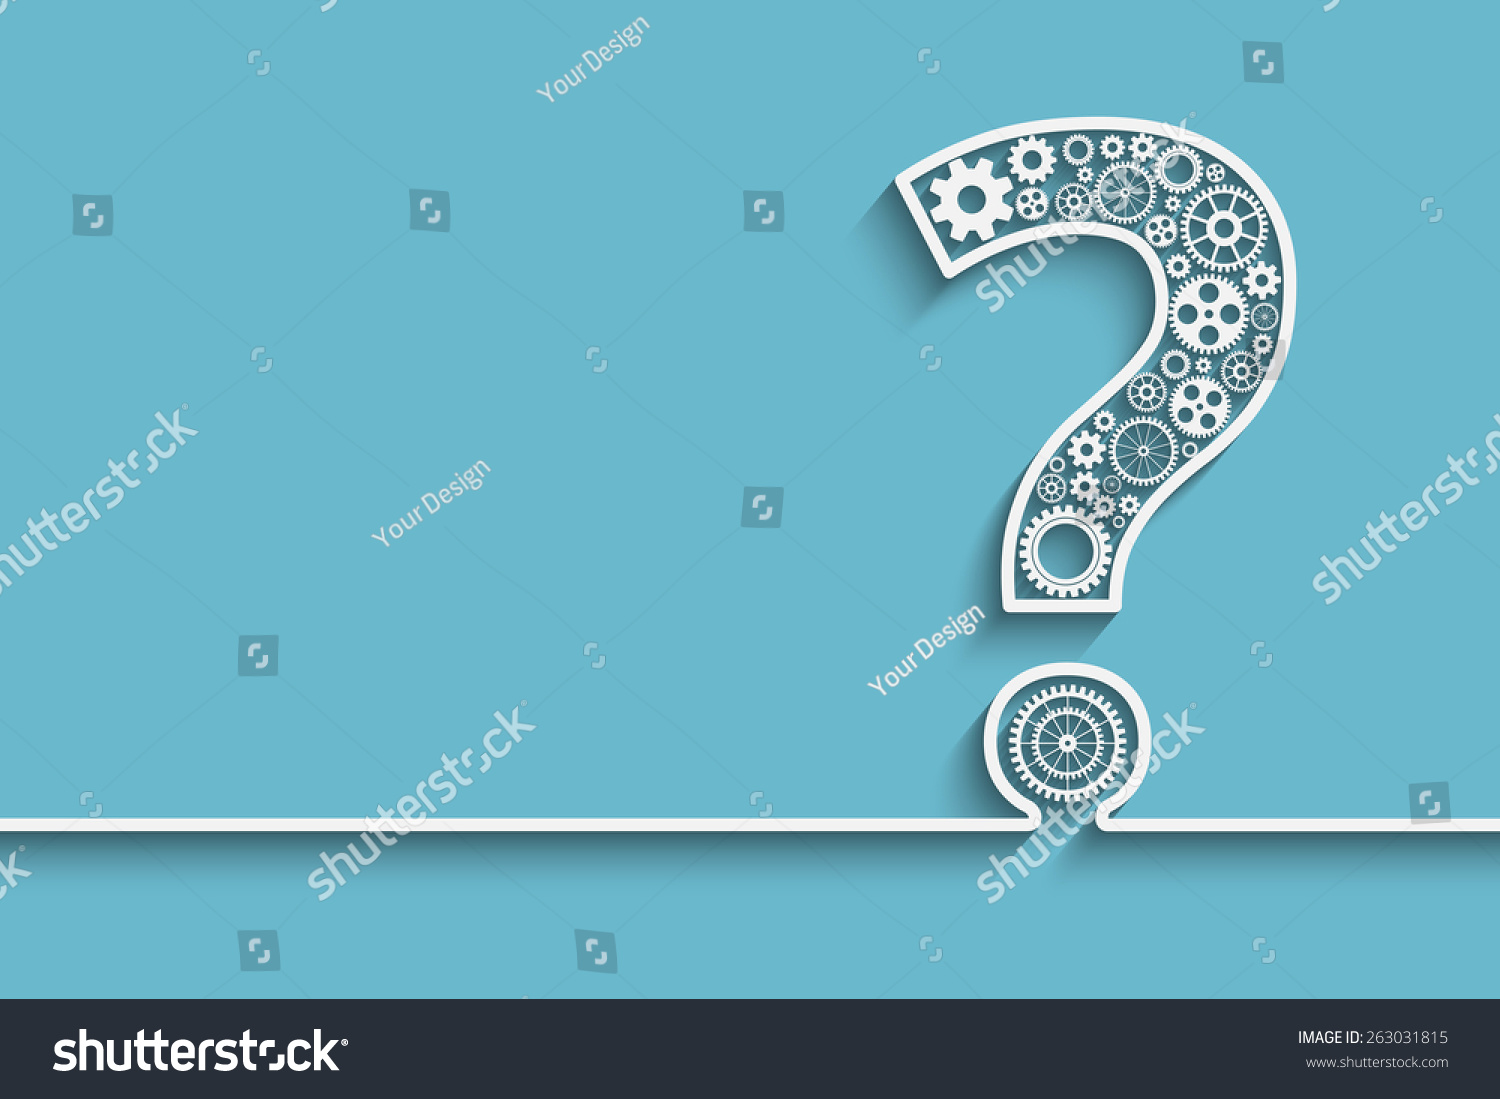 Creative question mark gears eps10 vector stock vector for Decor questions